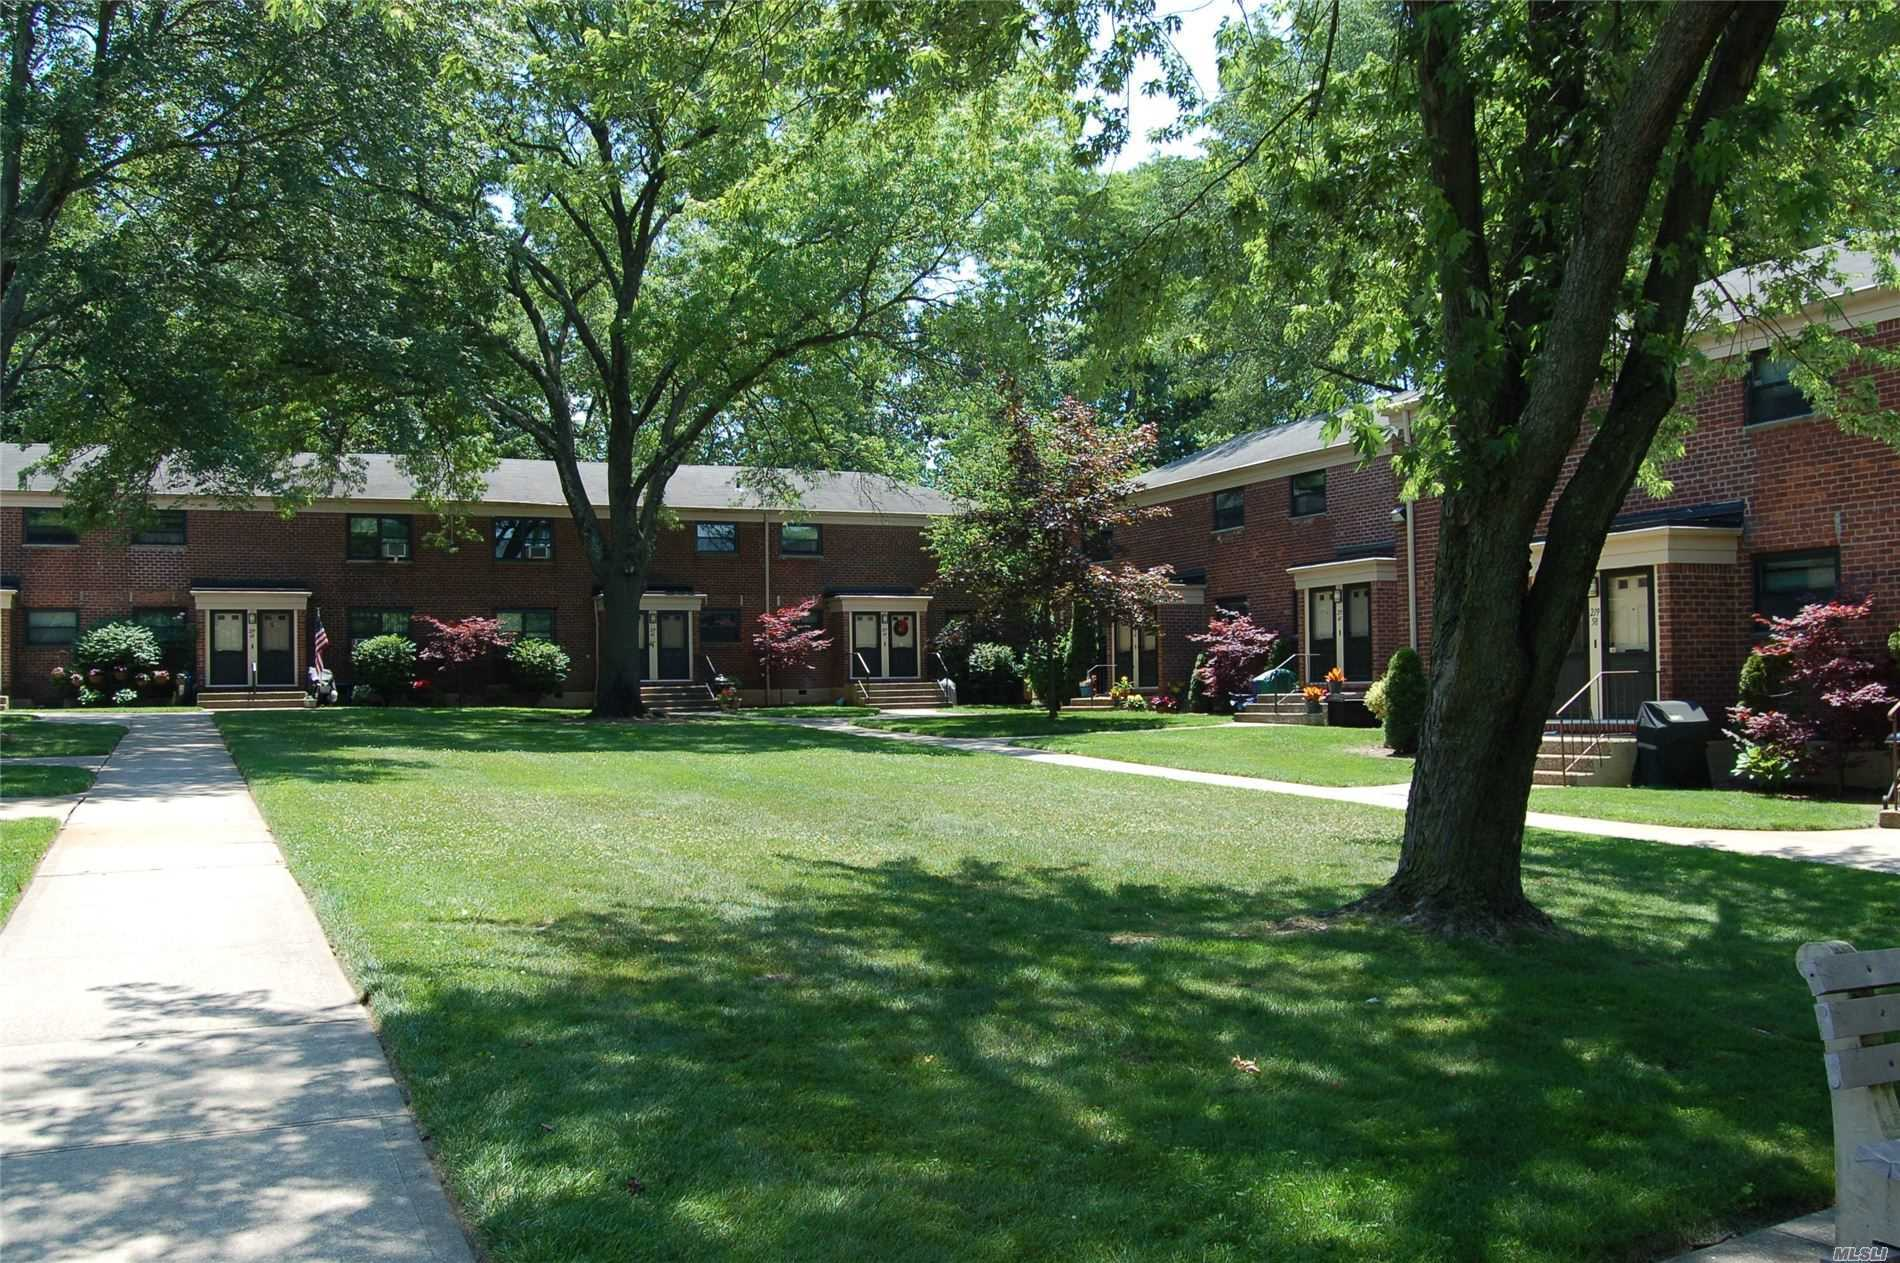 Renovated move in condition 2nd floor apt. Located in the court yard, park like setting.